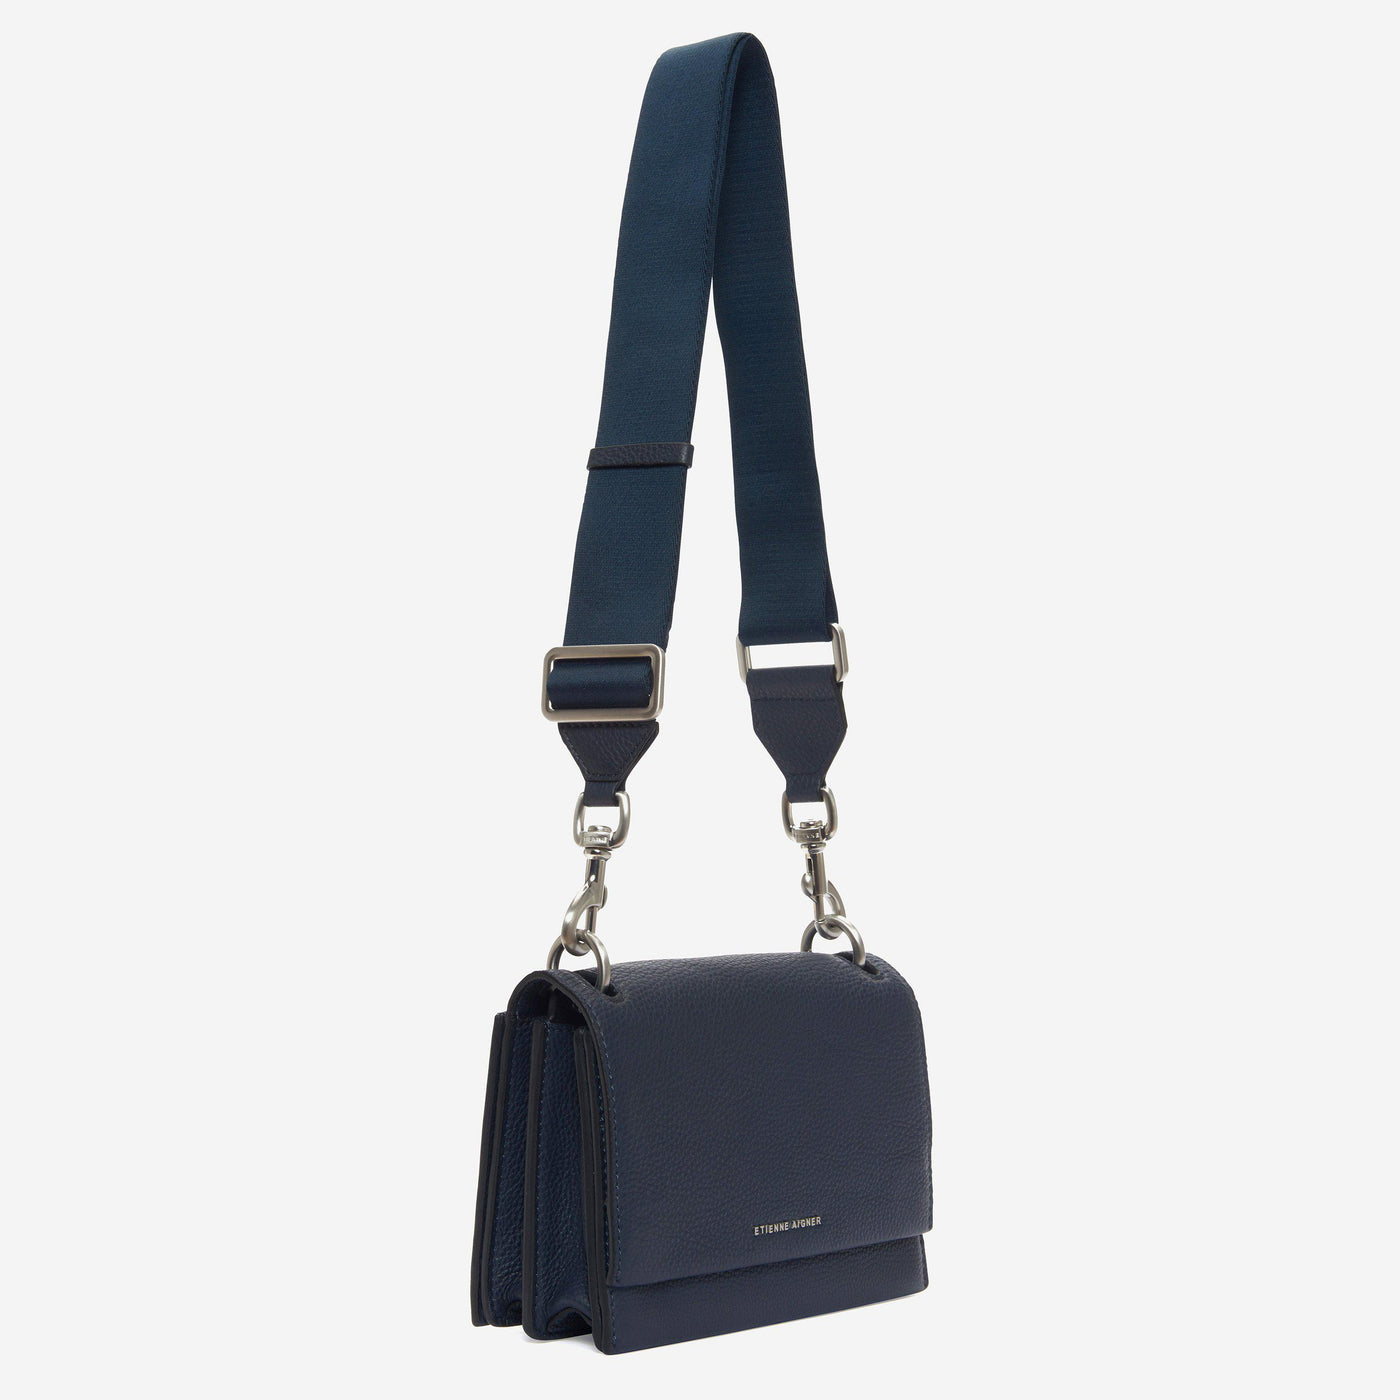 MADISON FLAP CROSSBODY